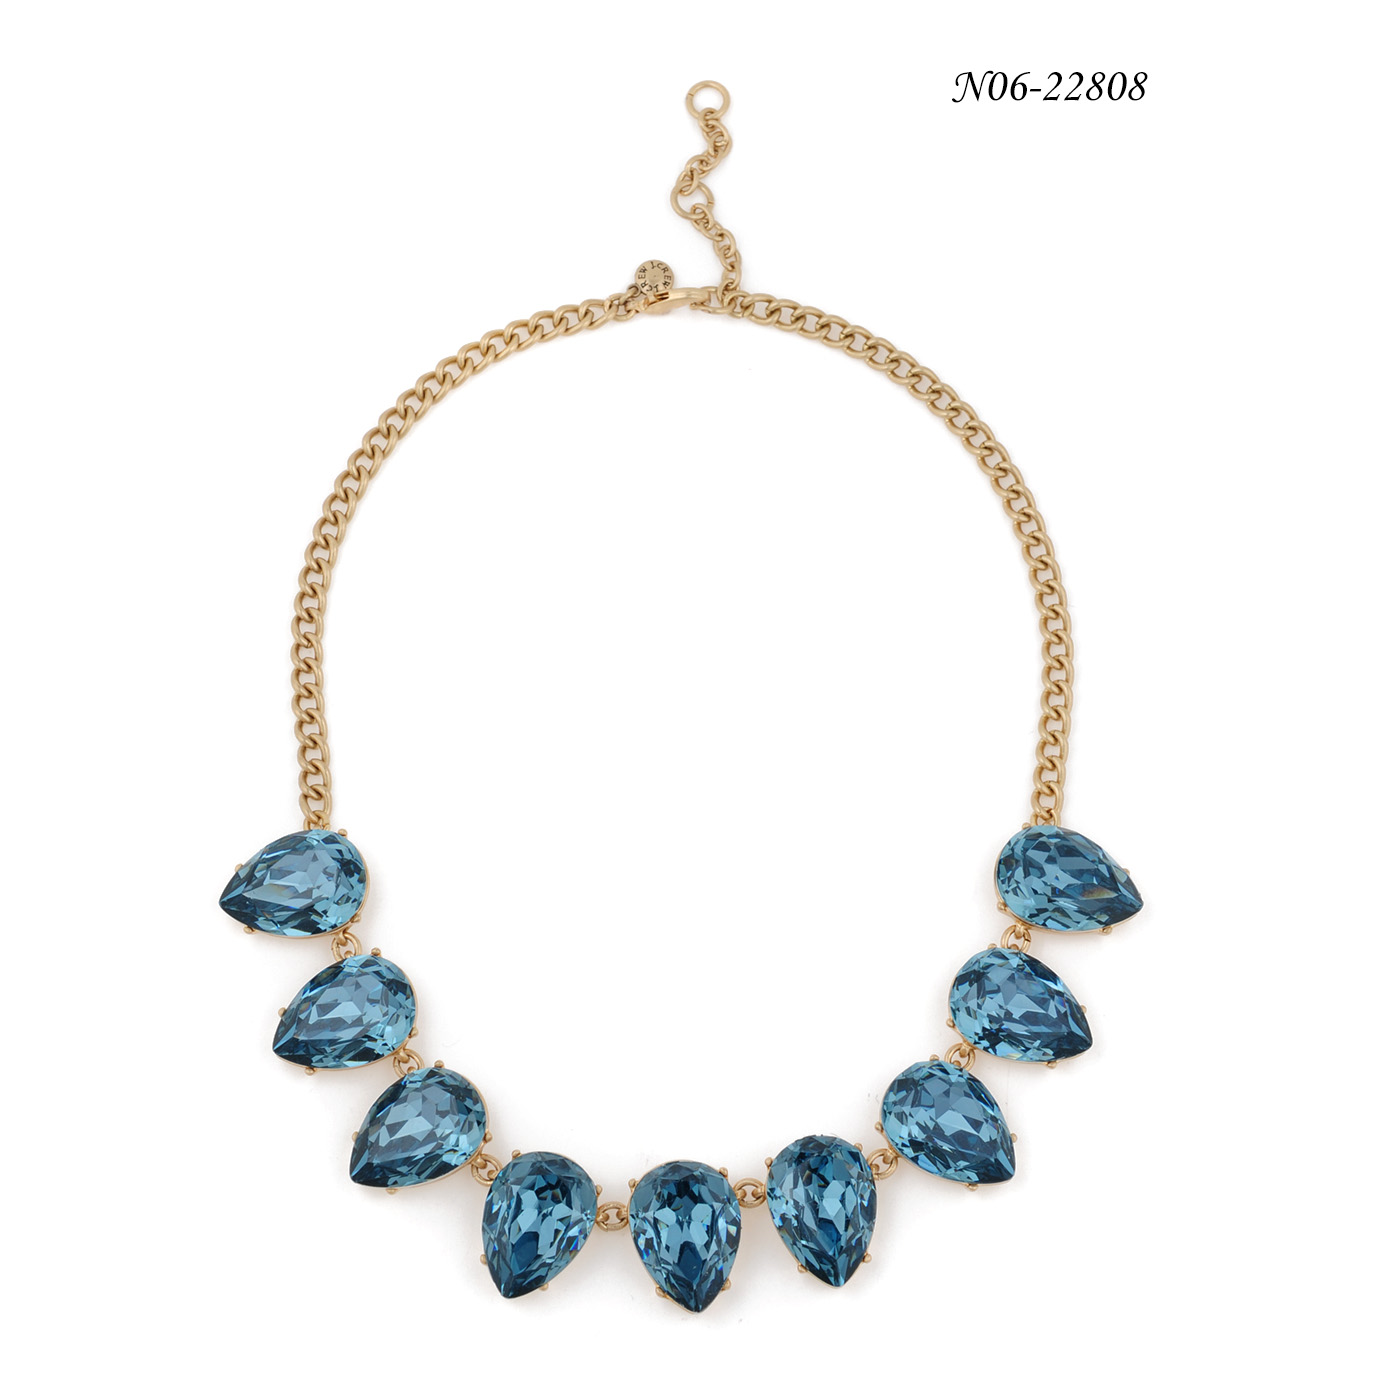 China fashion statement necklace Wholesaler